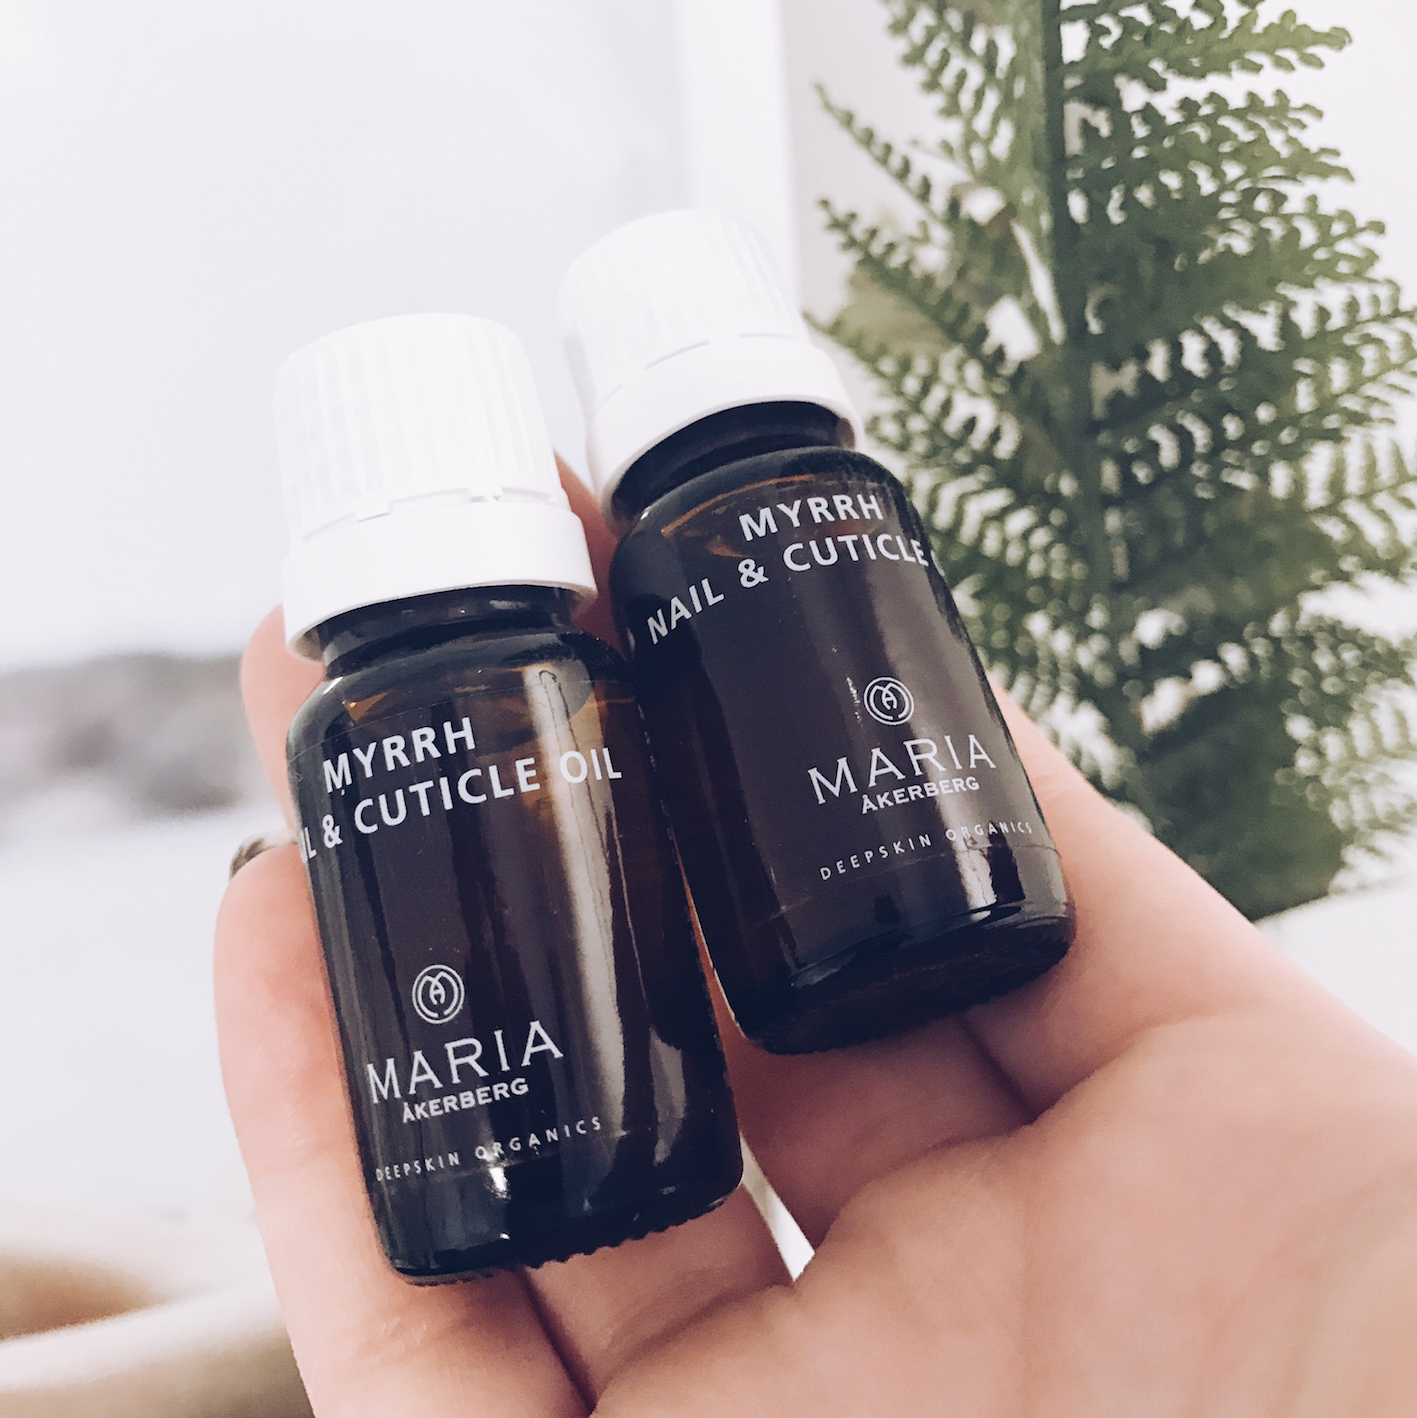 Myrrh Nail & Cuticle Oil - Maria Åkerberg